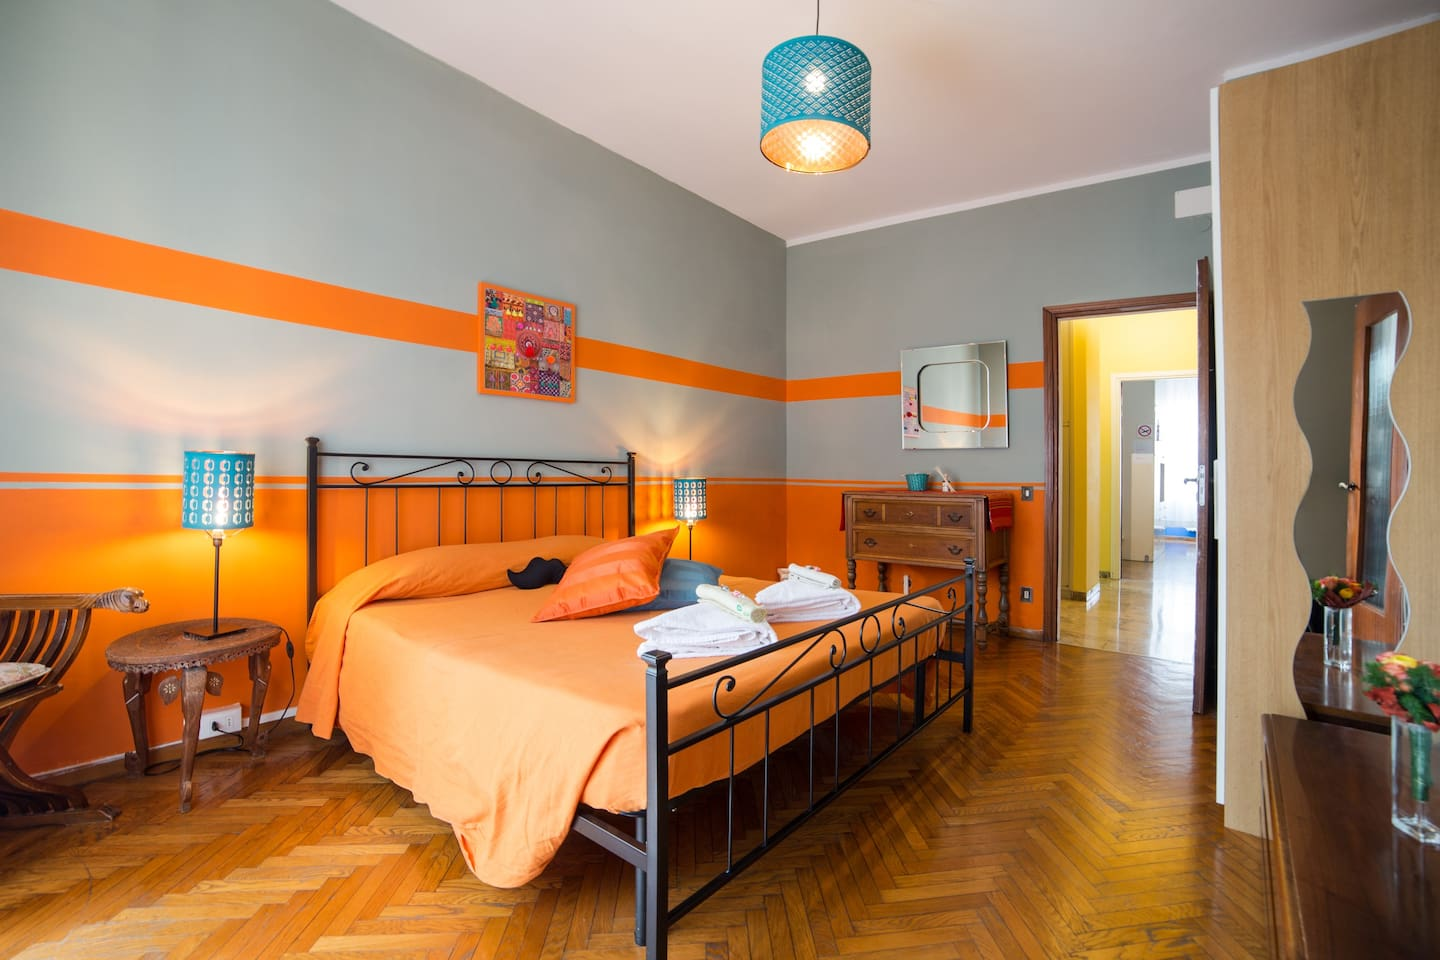 etno hospitality services breakfast serviced apartments for rent